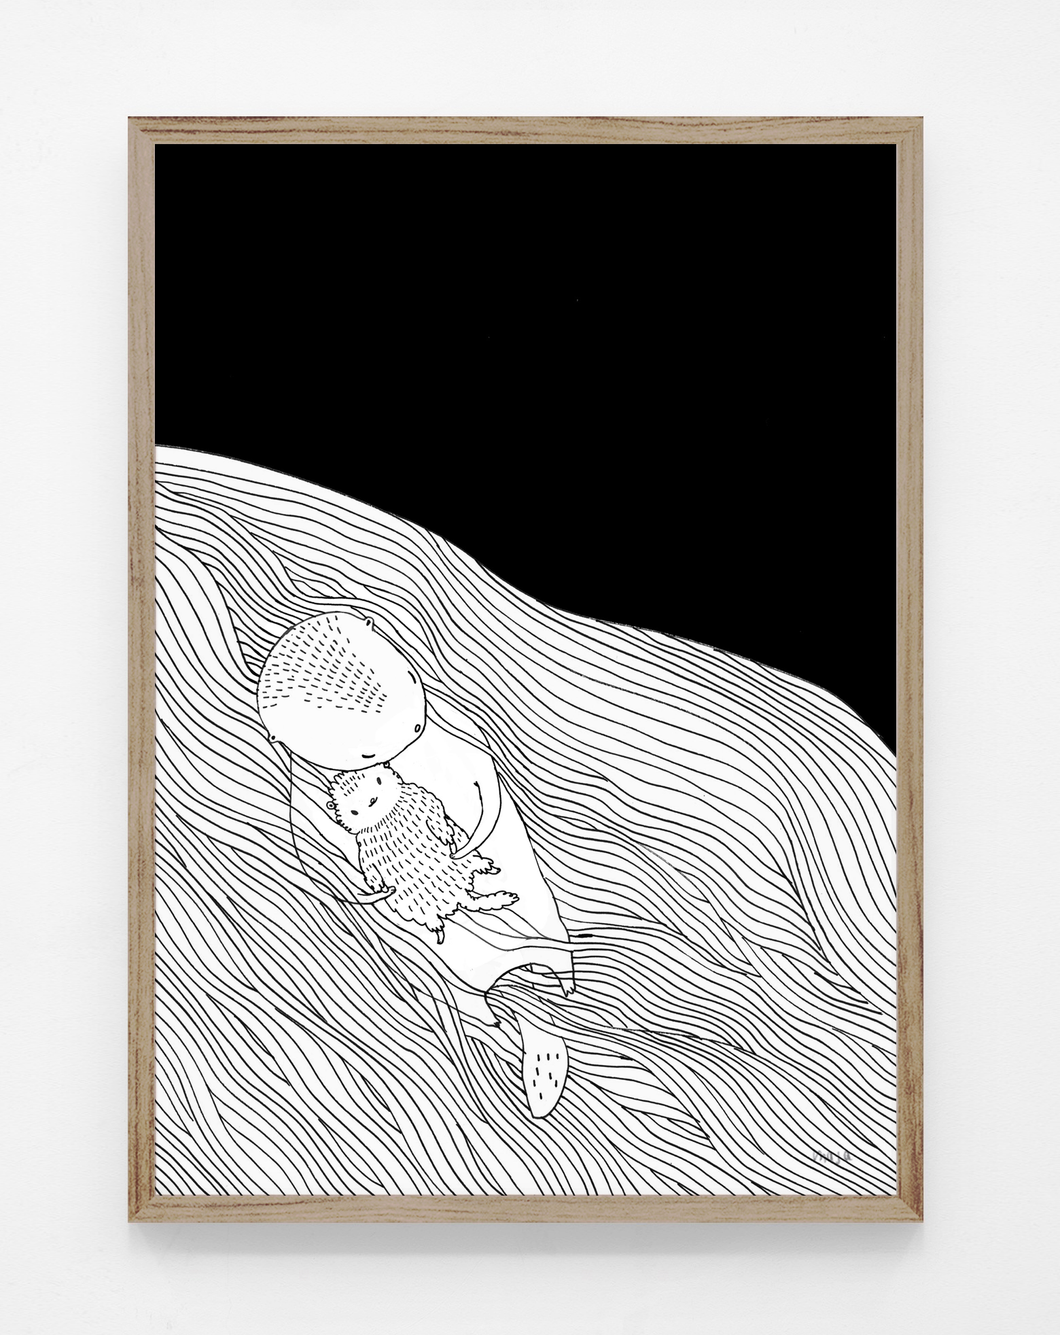 Seaotter baby, print